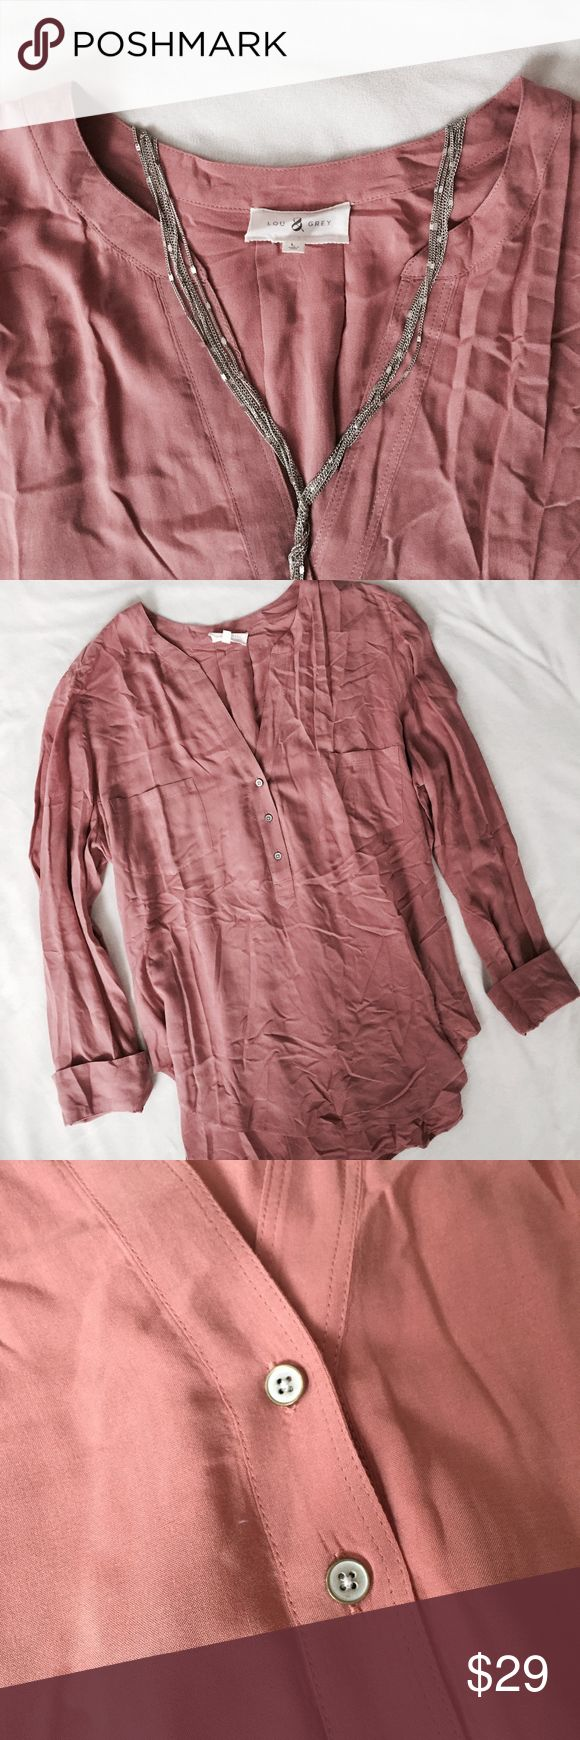 Lou & Grey Long Sleve extremely soft! gorgeous mauve color, no rips, stains, or imperfections. Lou & Grey Tops Button Down Shirts